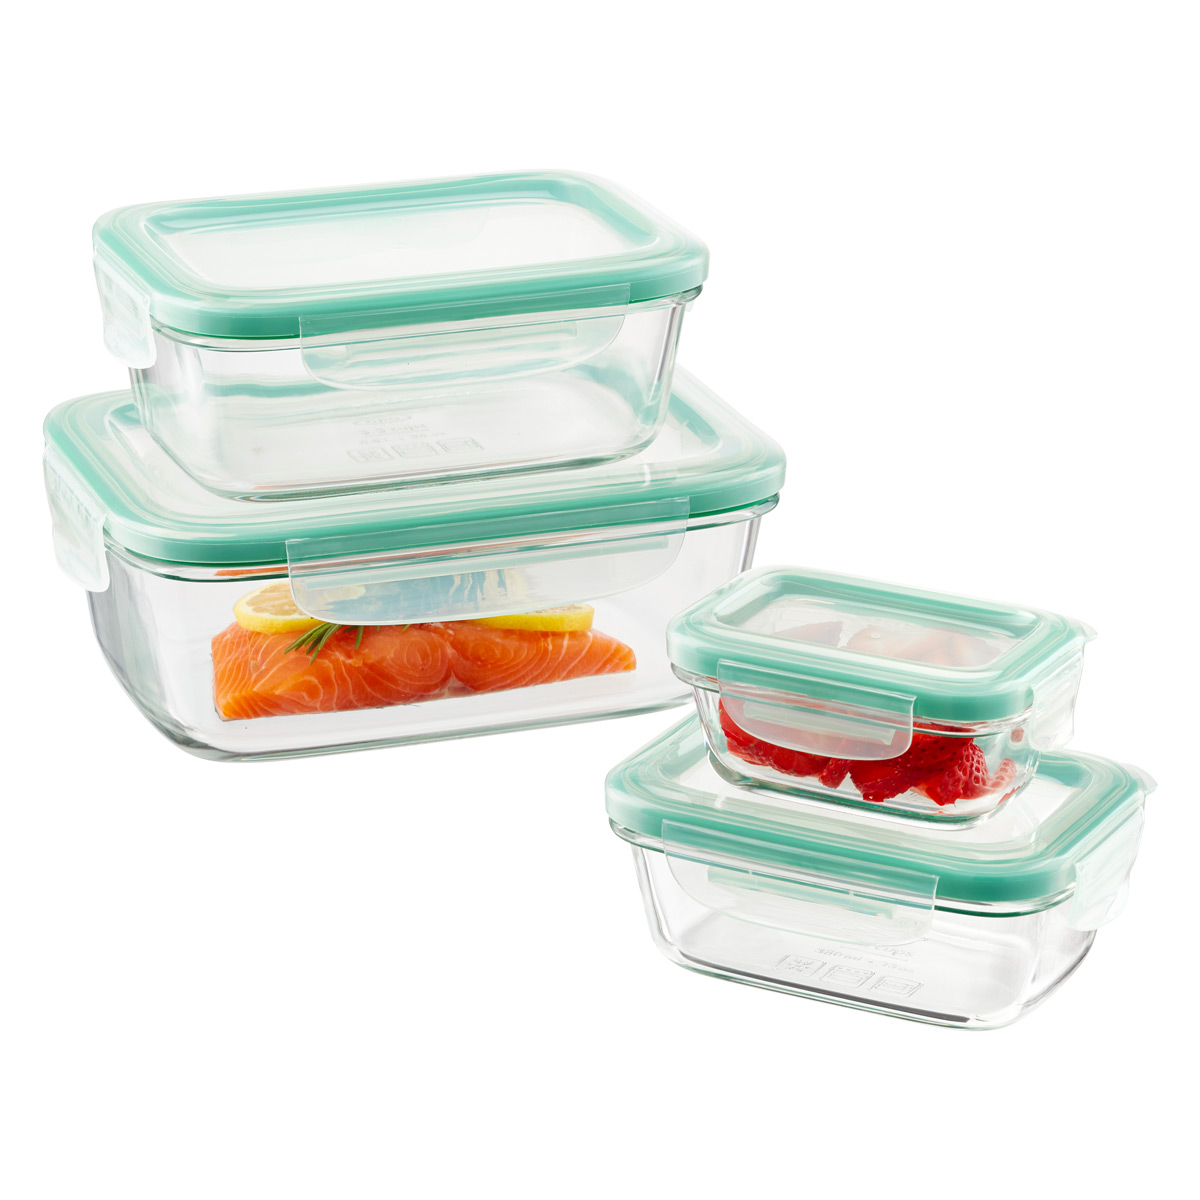 OXO Good Grips 8-Piece Smart Seal Rectangular Glass Food Storage Set  sc 1 st  The Container Store : oxo food storage  - Aquiesqueretaro.Com